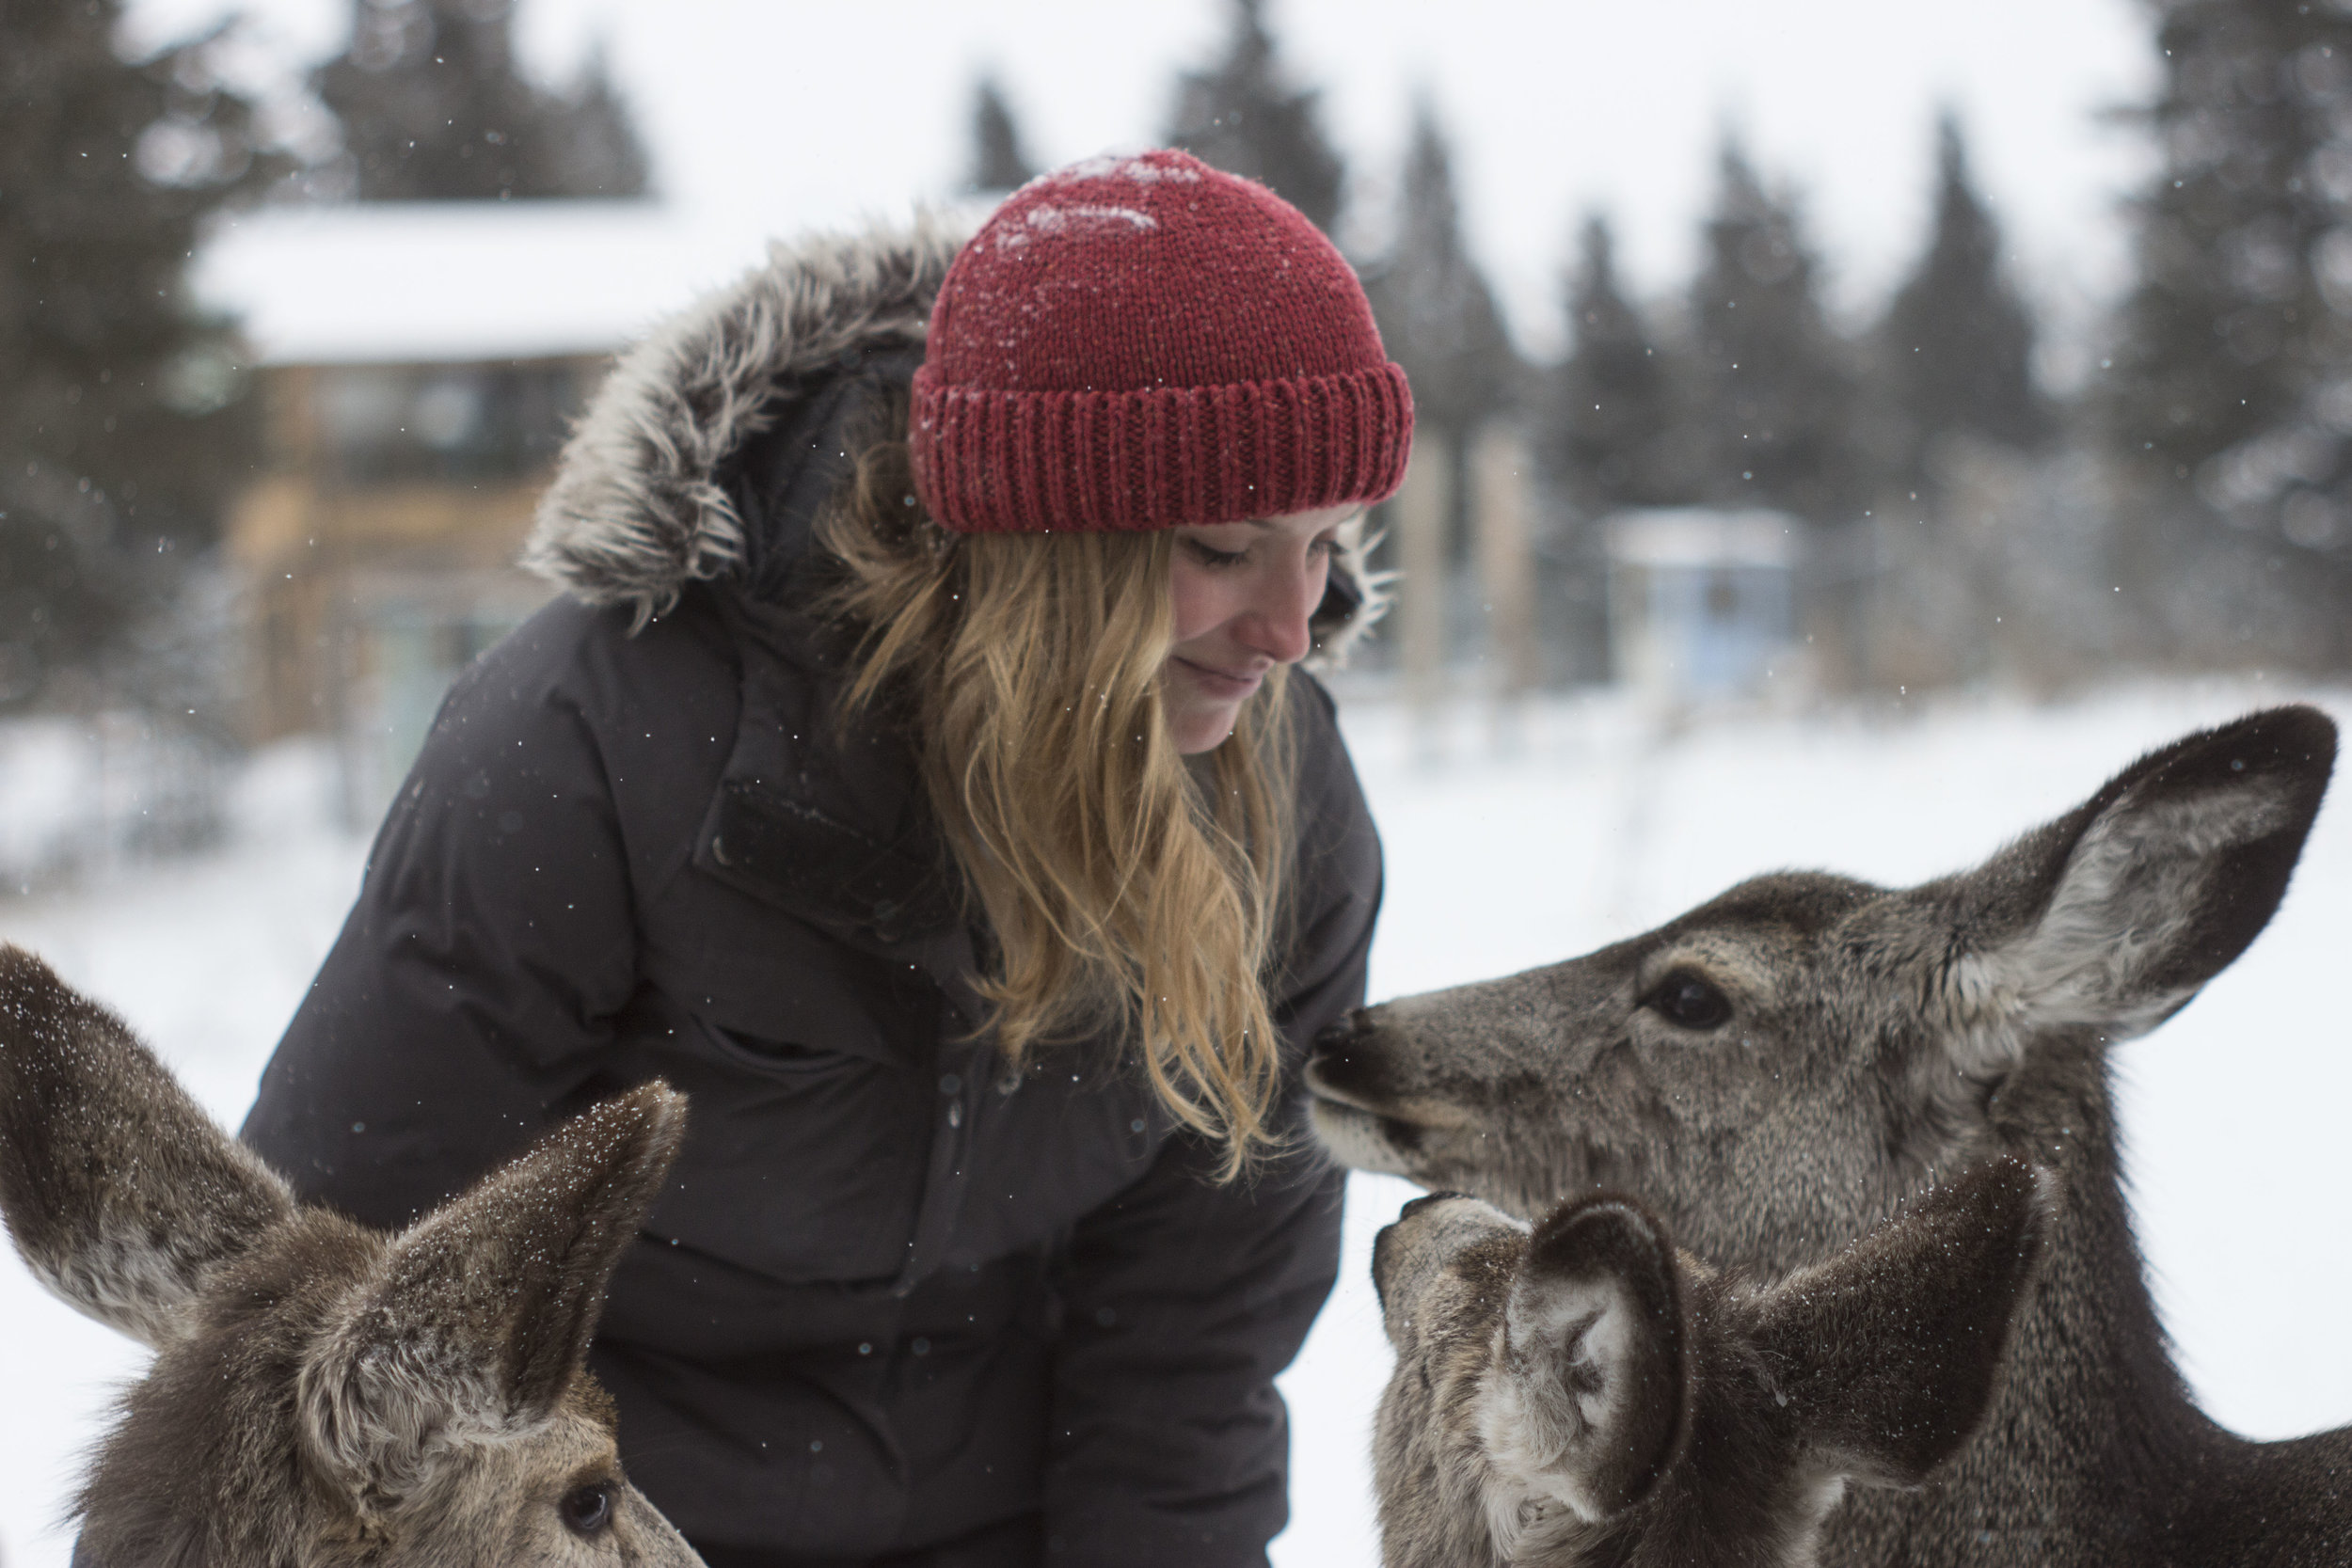 Cecilia Keating greets rehabilitated deer at Cochrane Ecological Institute in Cochrane, AB, February 2017. (Megan Perra)